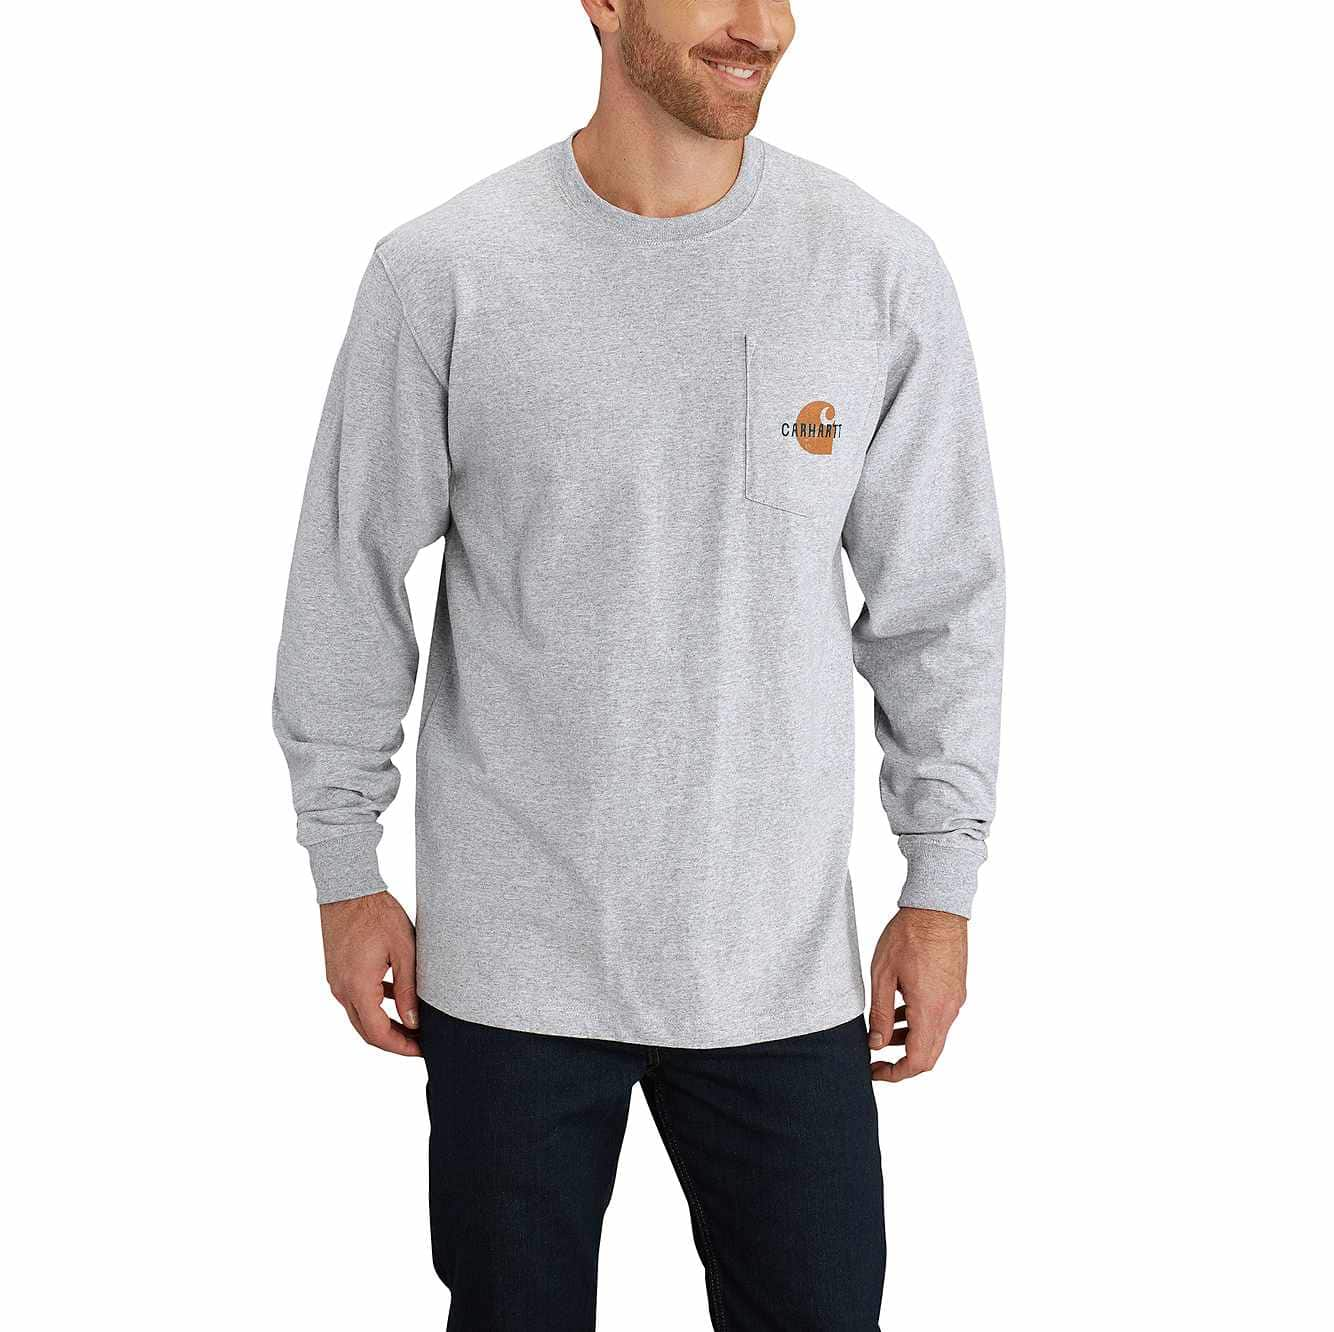 Picture of Workwear Graphic Opening Season Long-Sleeve T-Shirt in Heather Gray